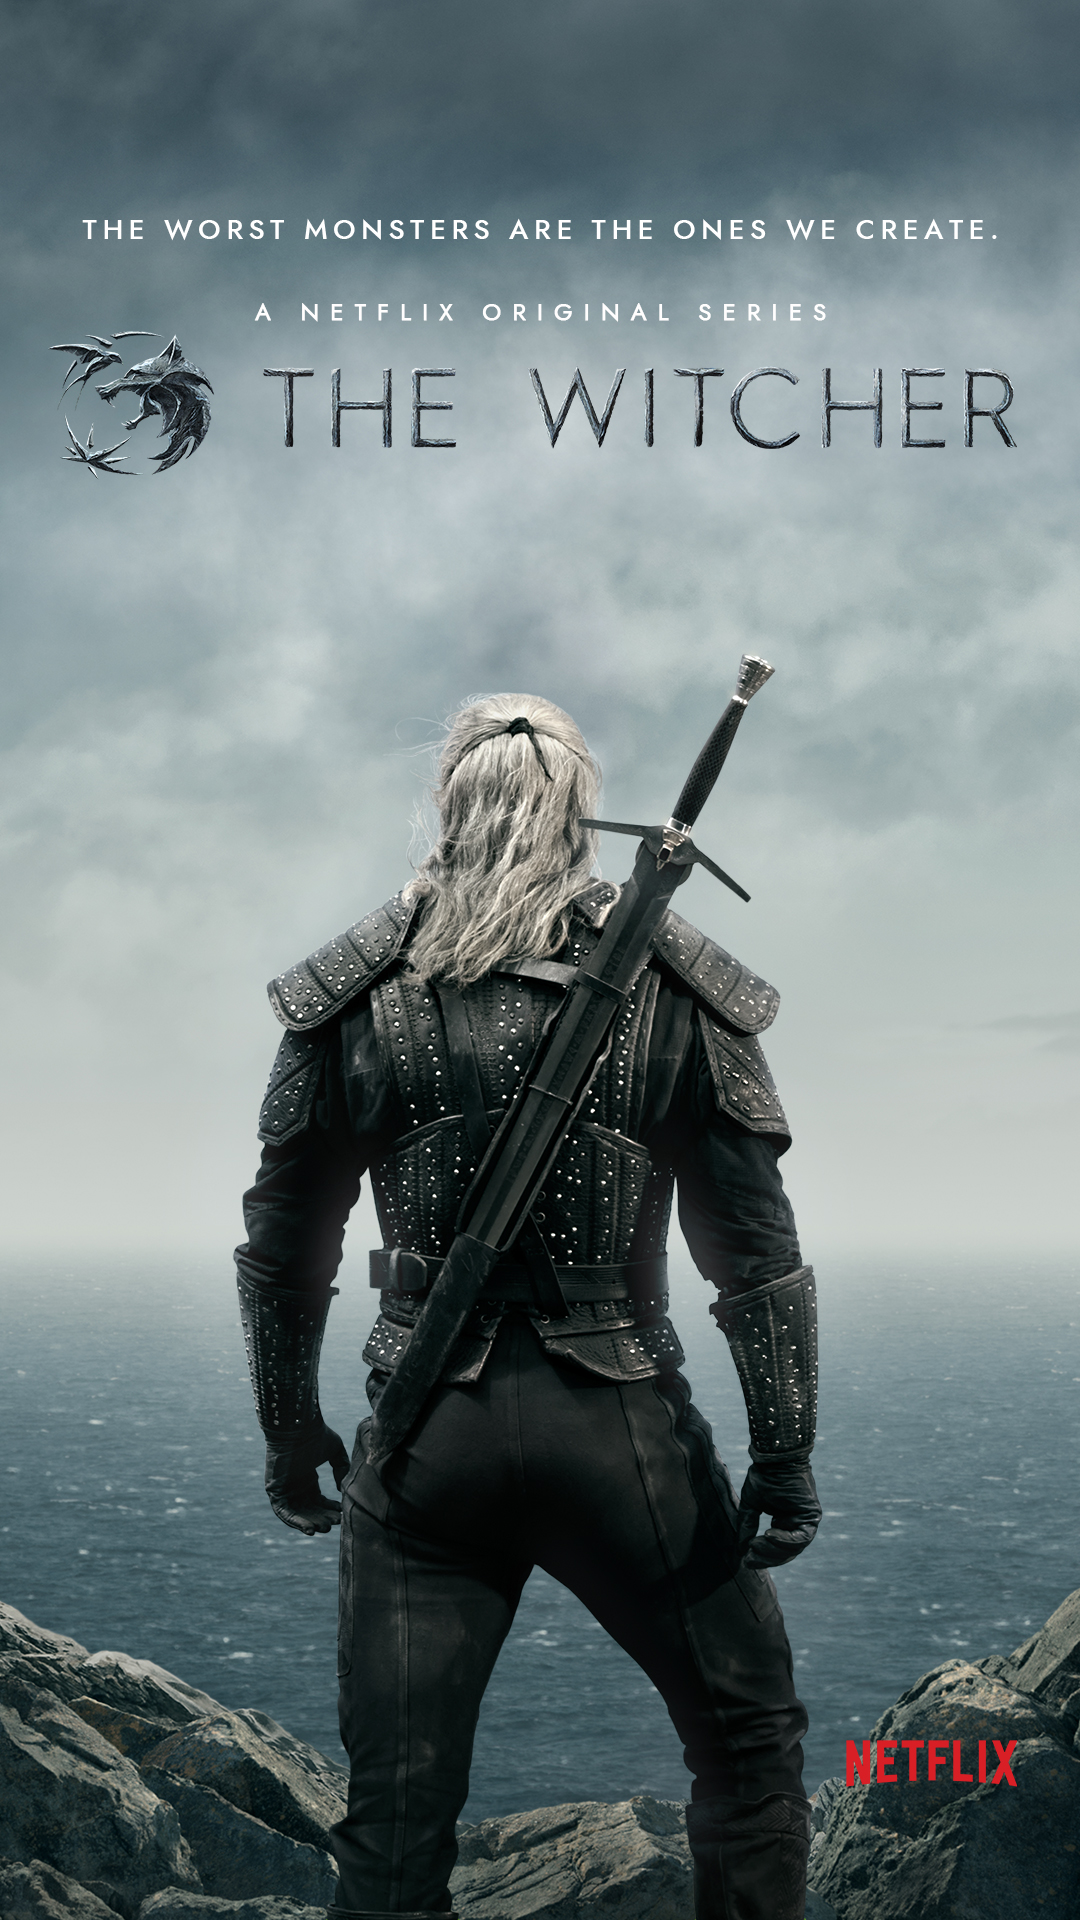 The Witcher (TV Series) - IMDb